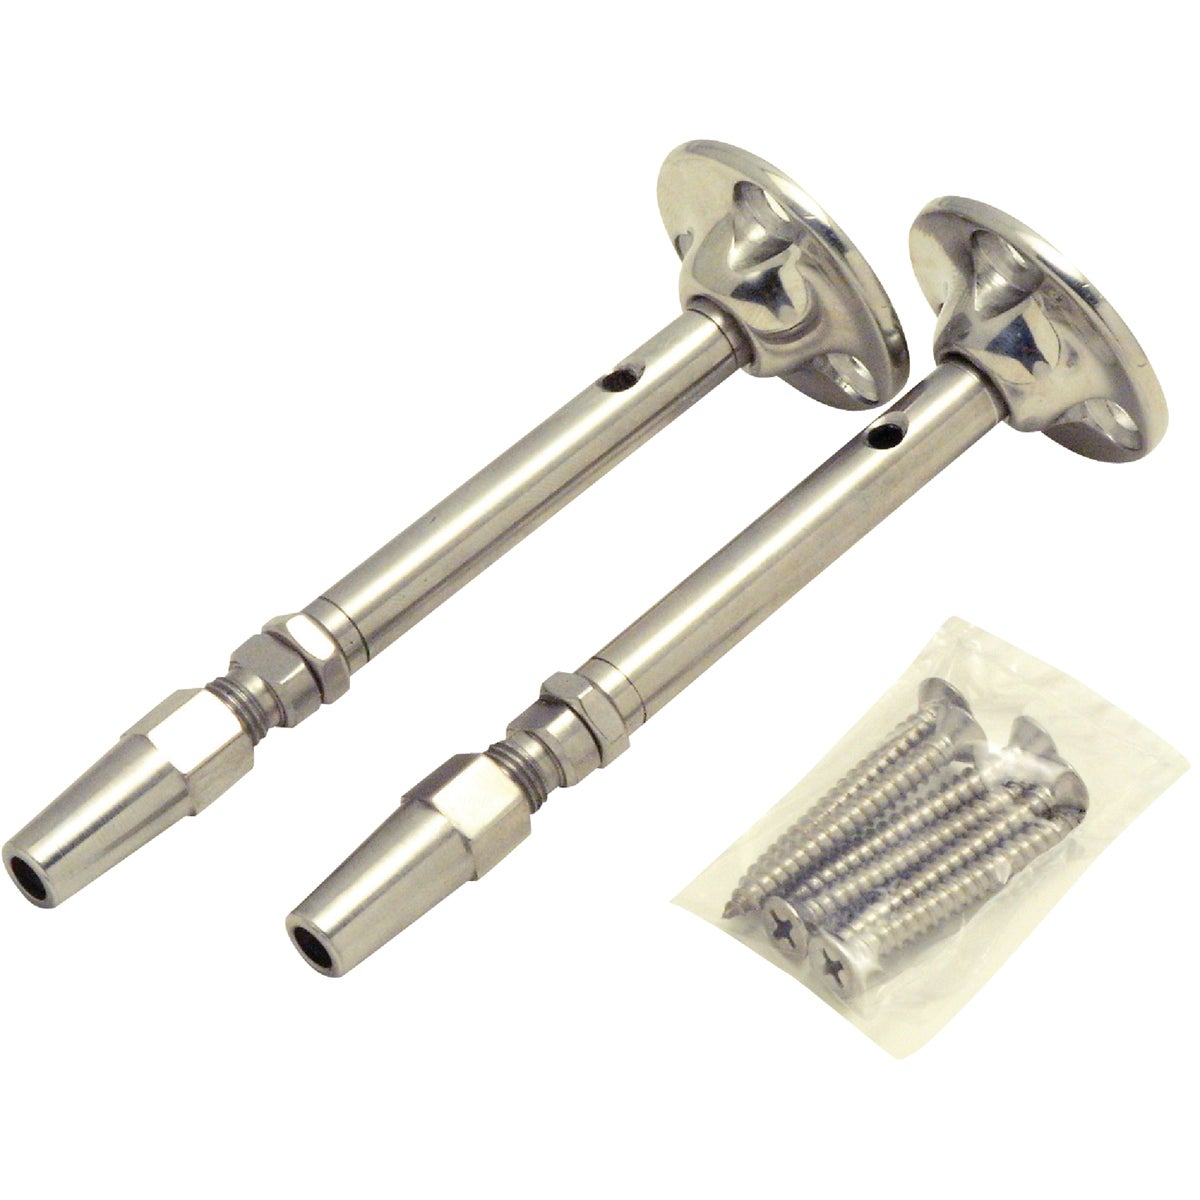 2PK RAILEASY TENSIONER - C09810204 by Atlantis Rail System